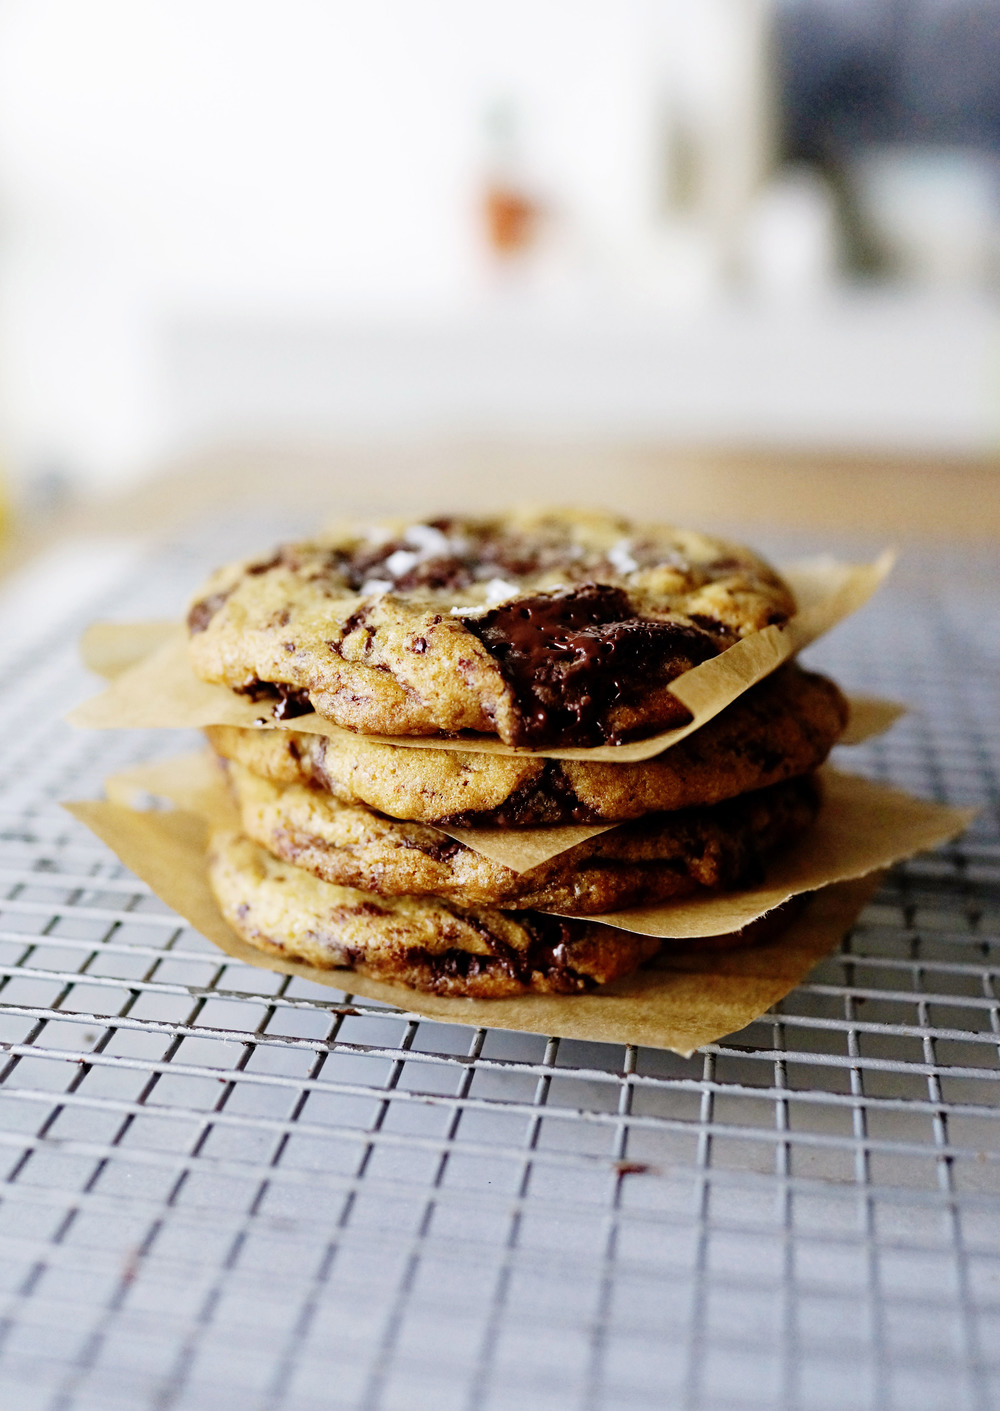 Recipe: Oh Yeah, Best Chocolate Chip Cookies  /  www.goodonpaperdesign.com/blog  /  @good_on_paper